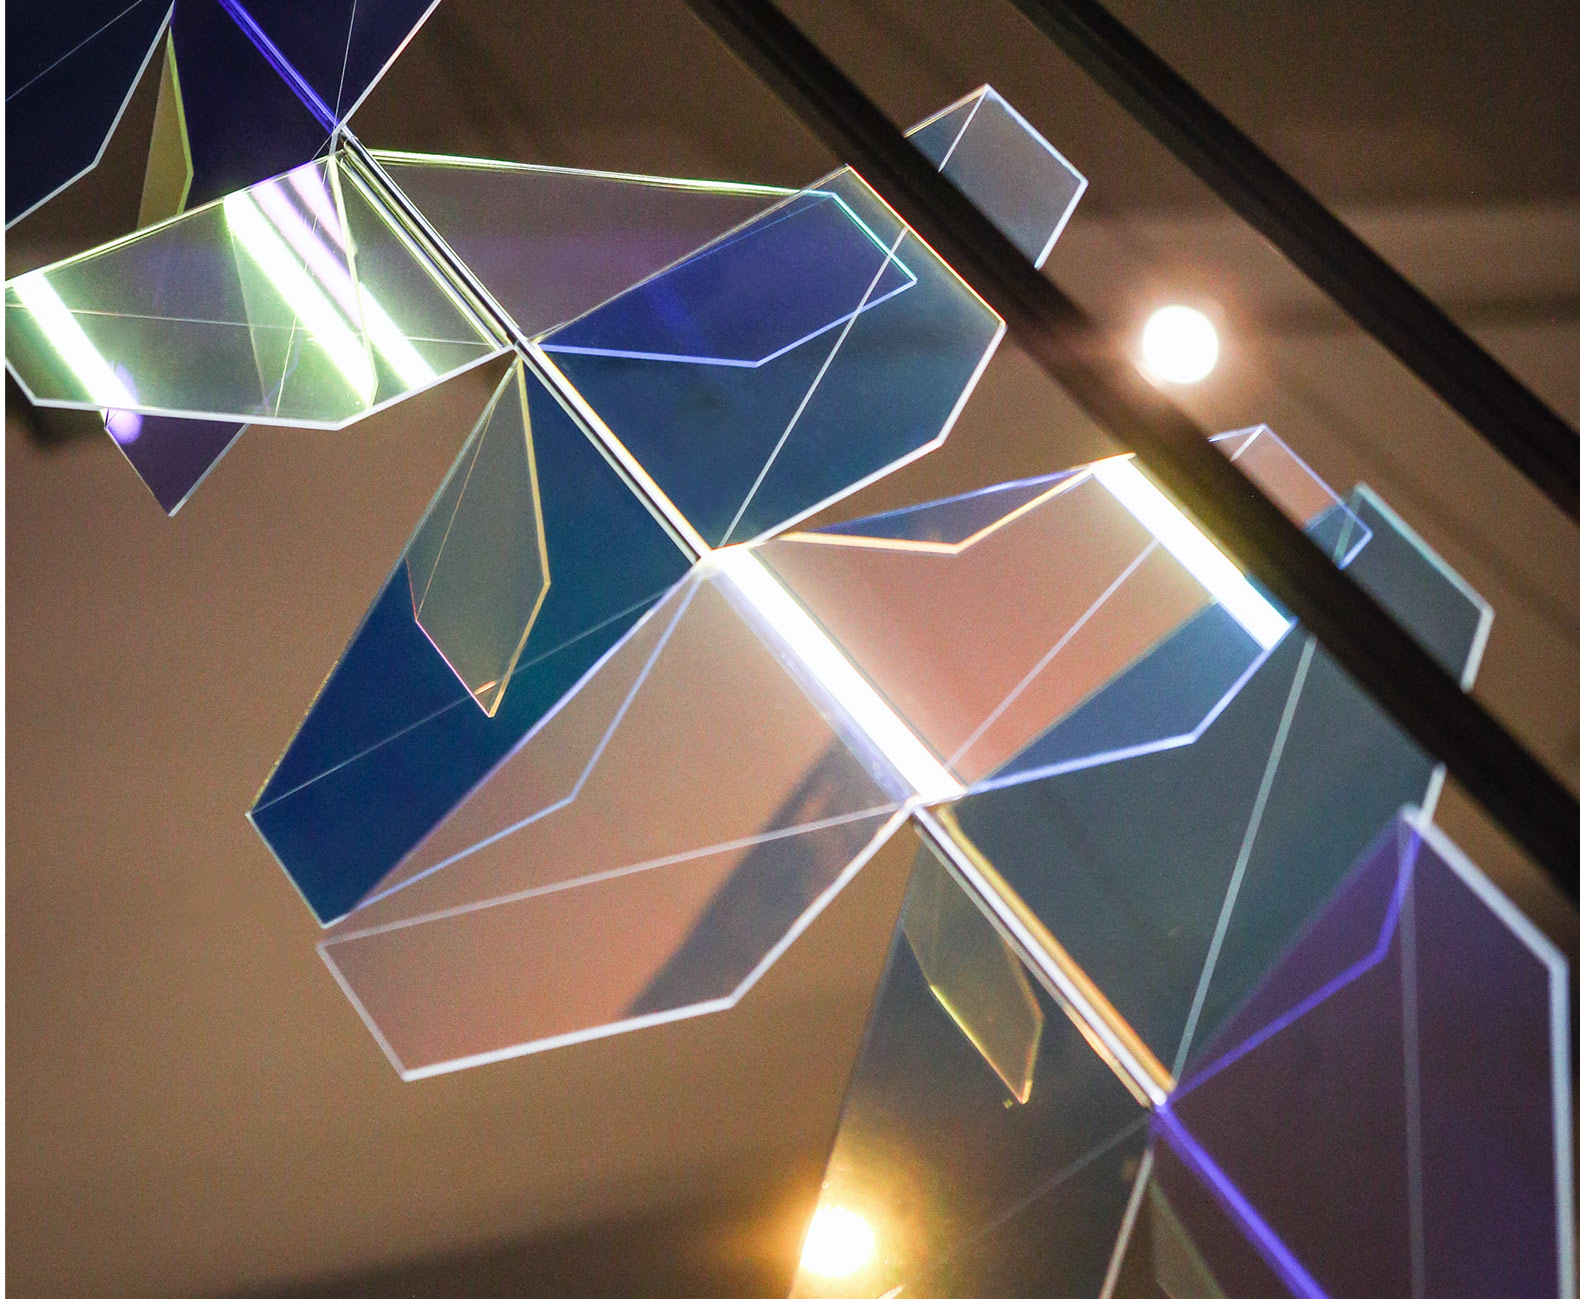 Frederike Top's geometric LED lamps cast colorful rays of ever-changing light